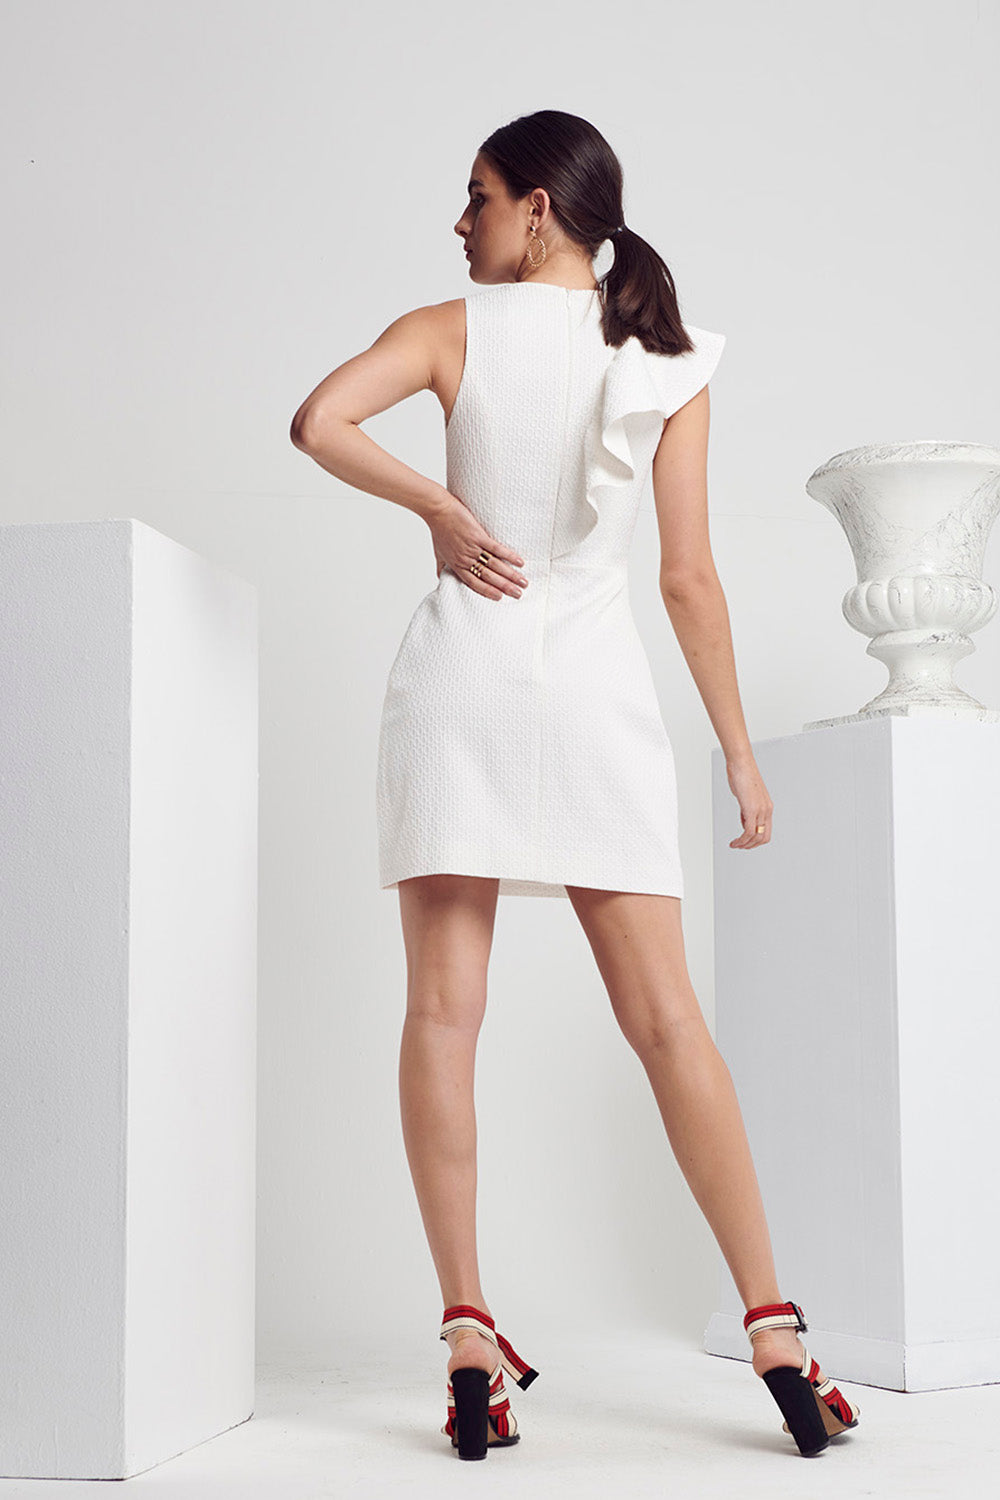 CALIBRE A-LINE DRESS